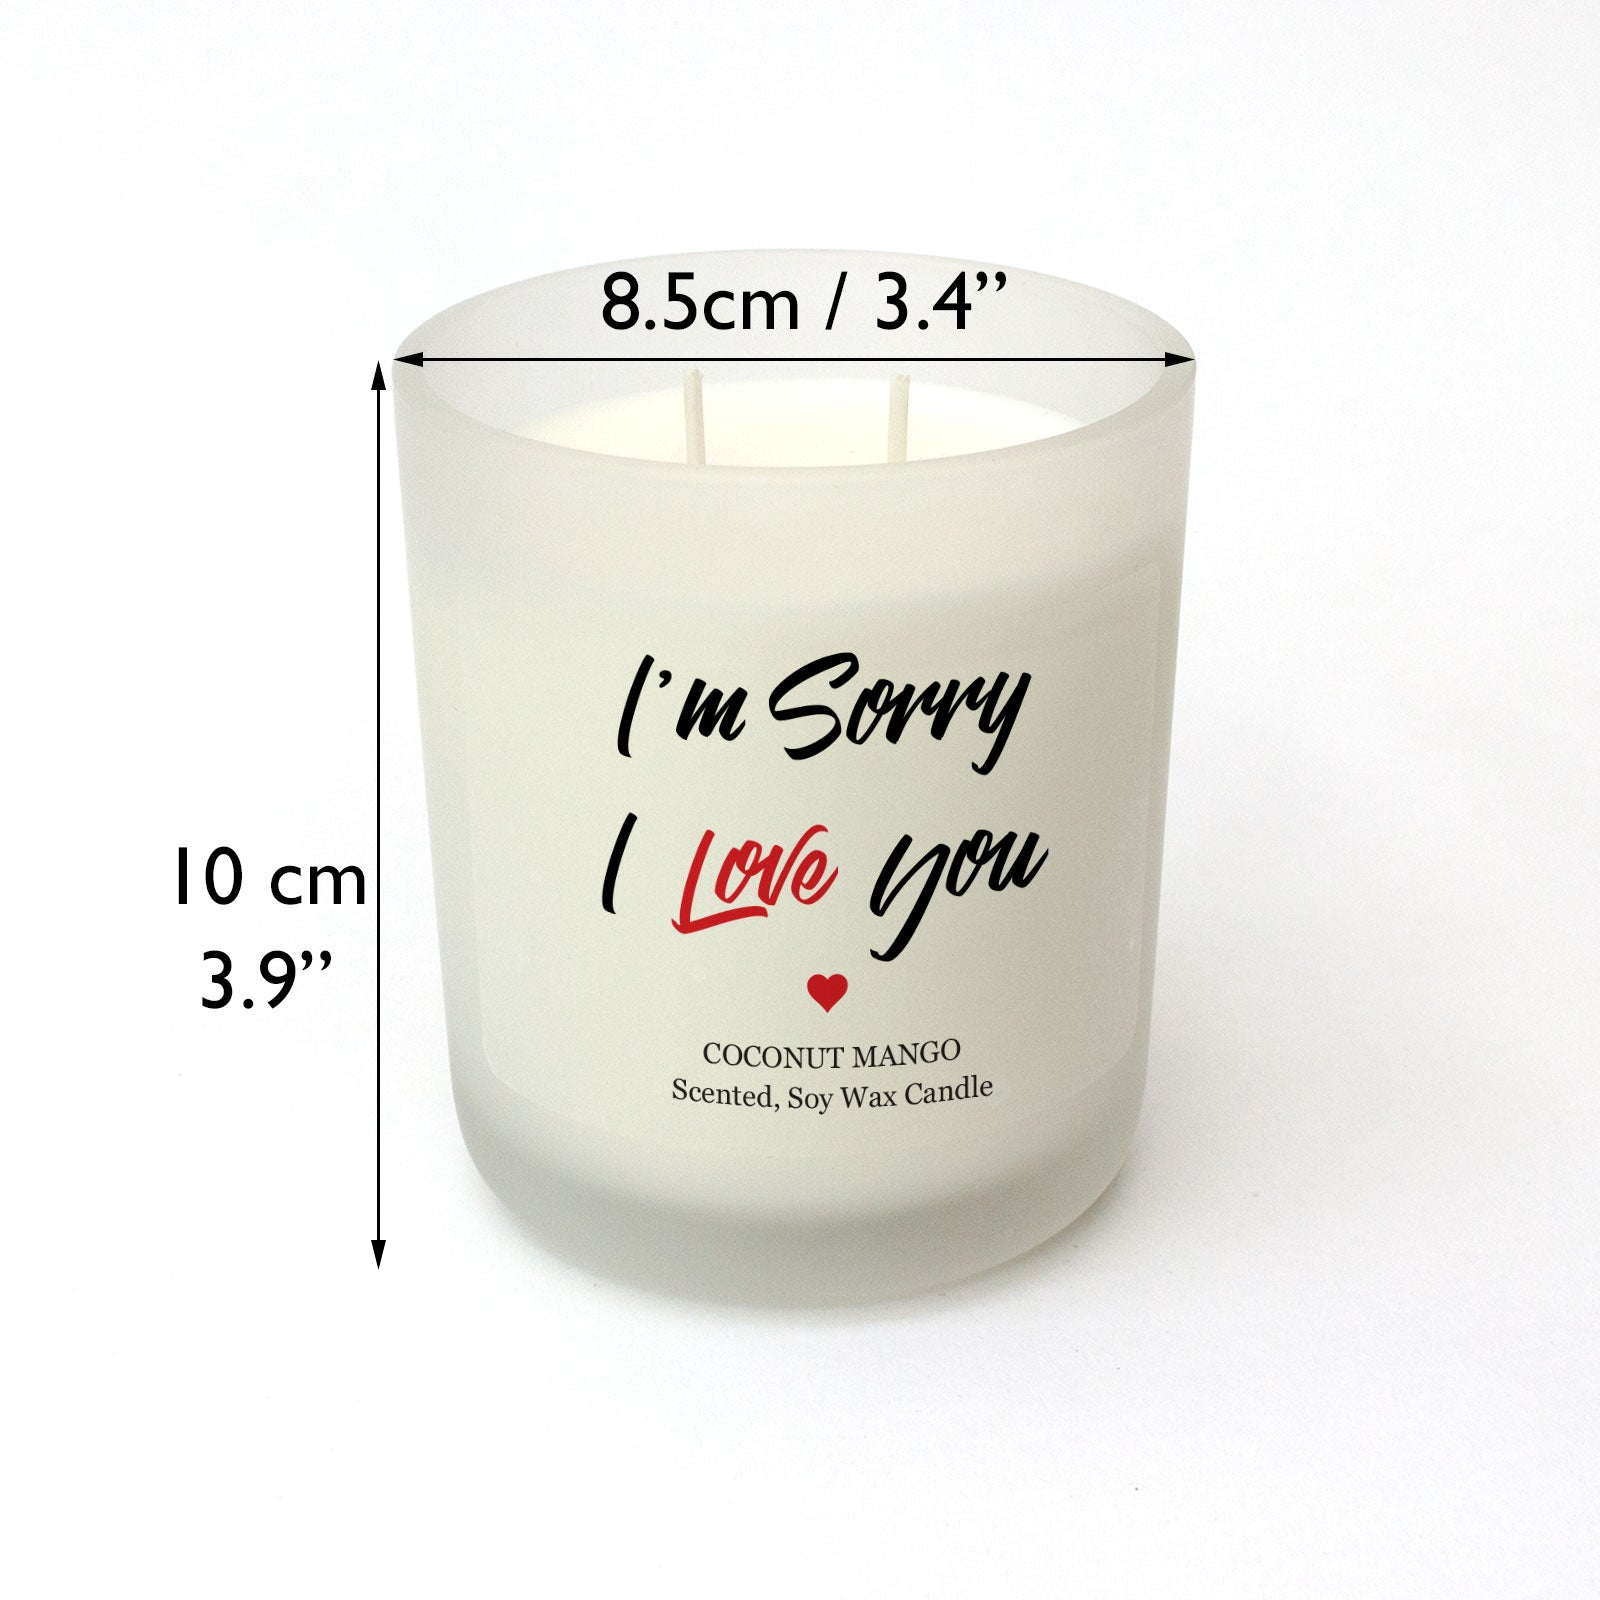 I'm Sorry, I Love You Scented Candle Apology Gift